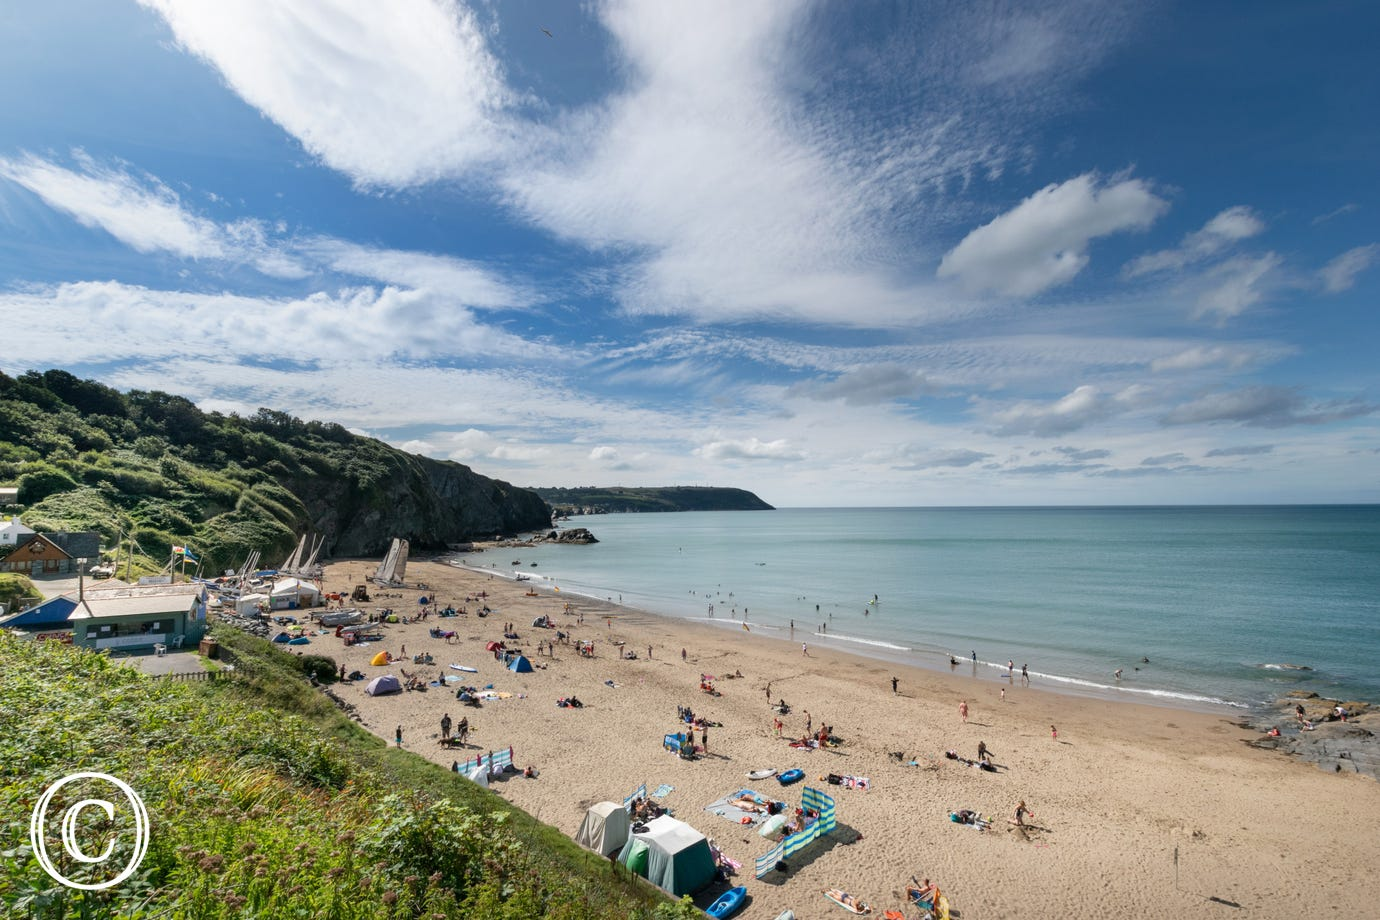 The Beach at Tresaith within walking distance